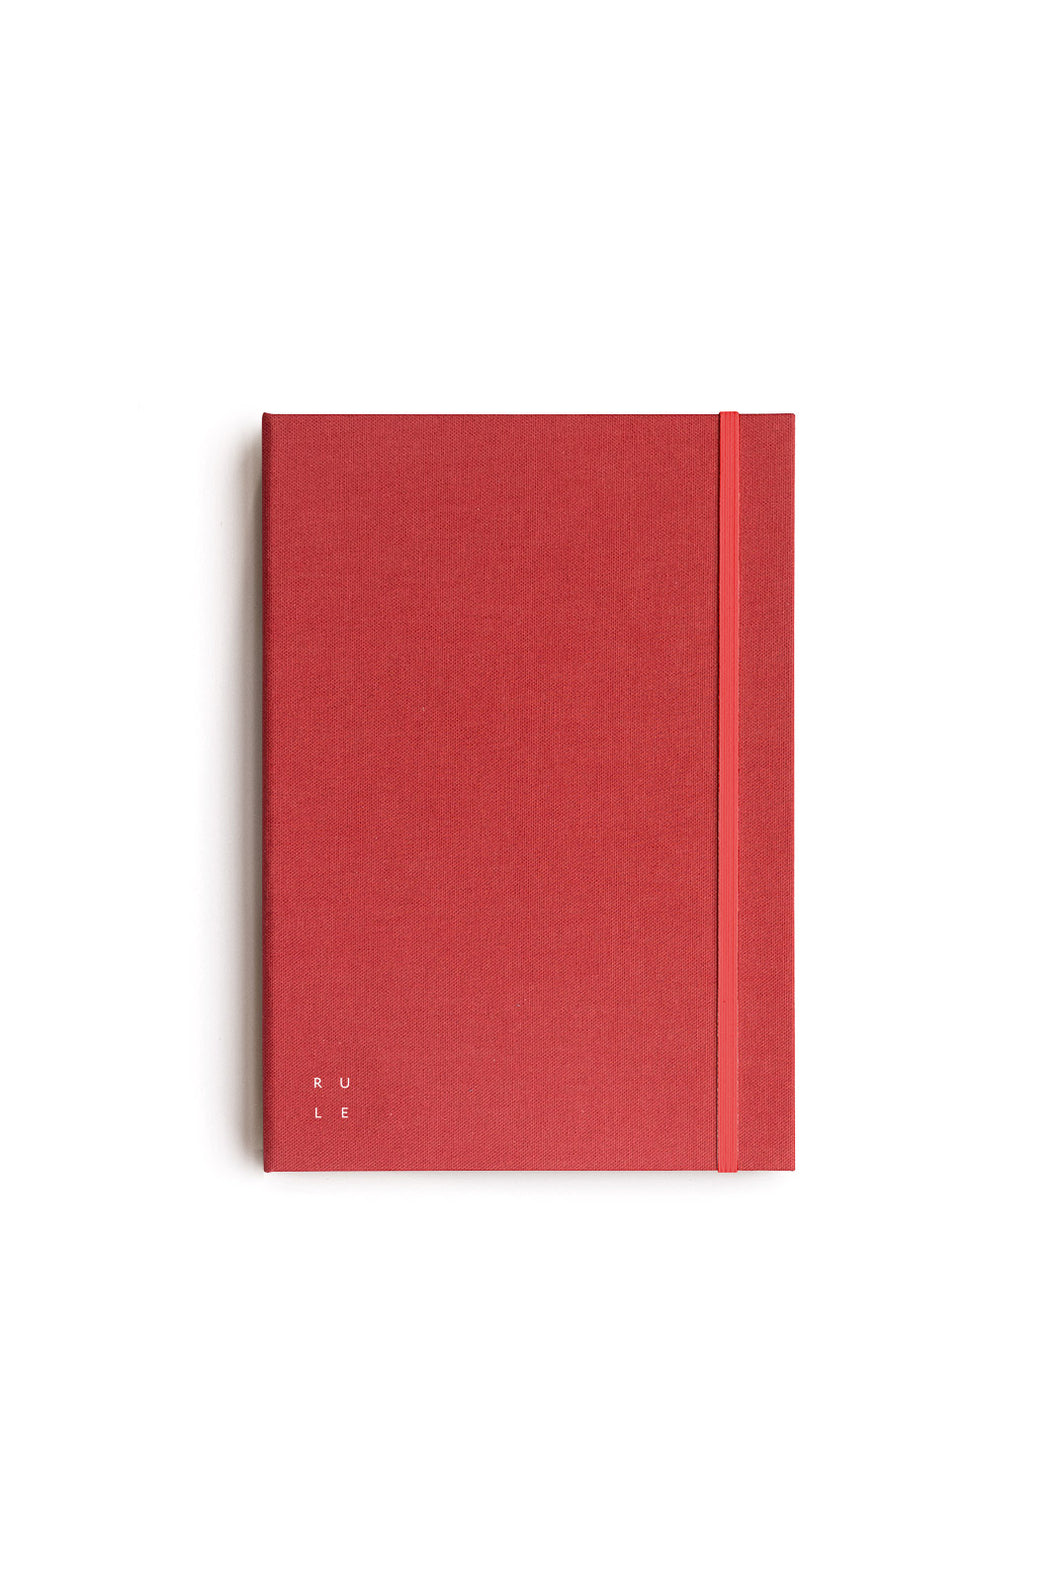 Milligram - Soft Cover Linen Notebook - Ruled - A5 - Red